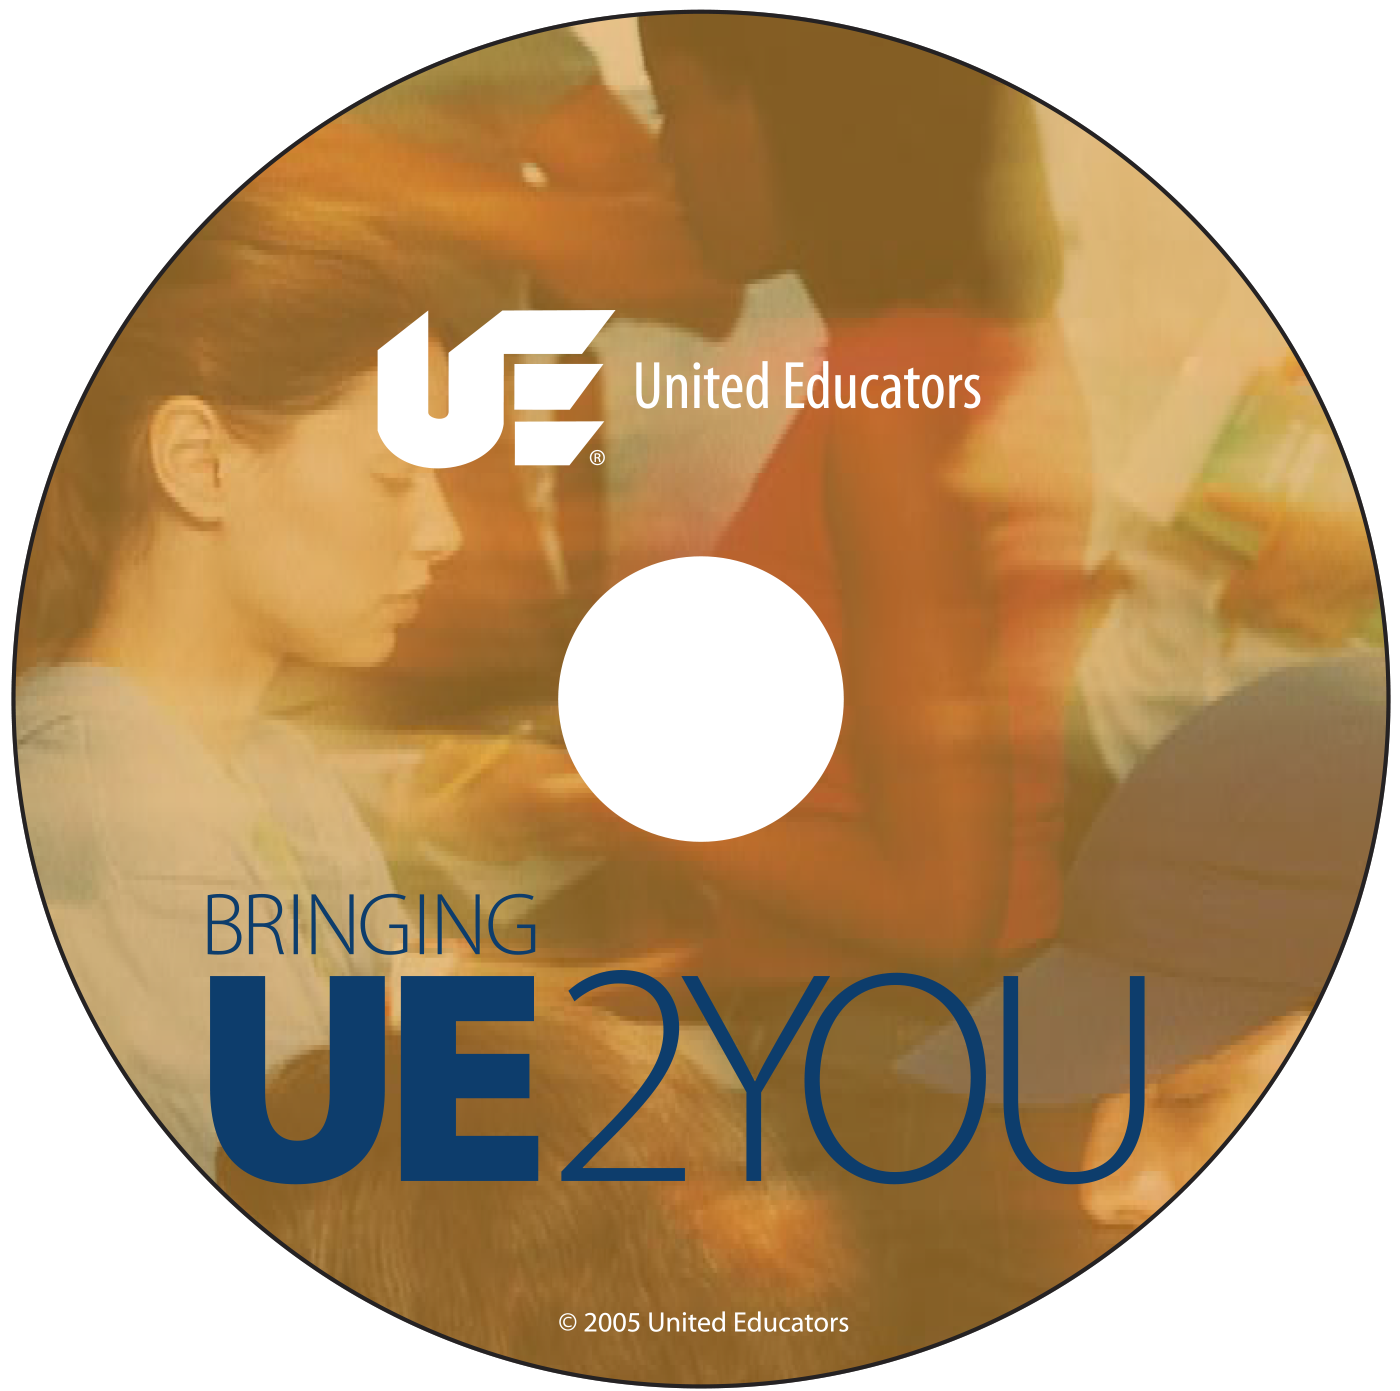 UE2YOU Educational Videos